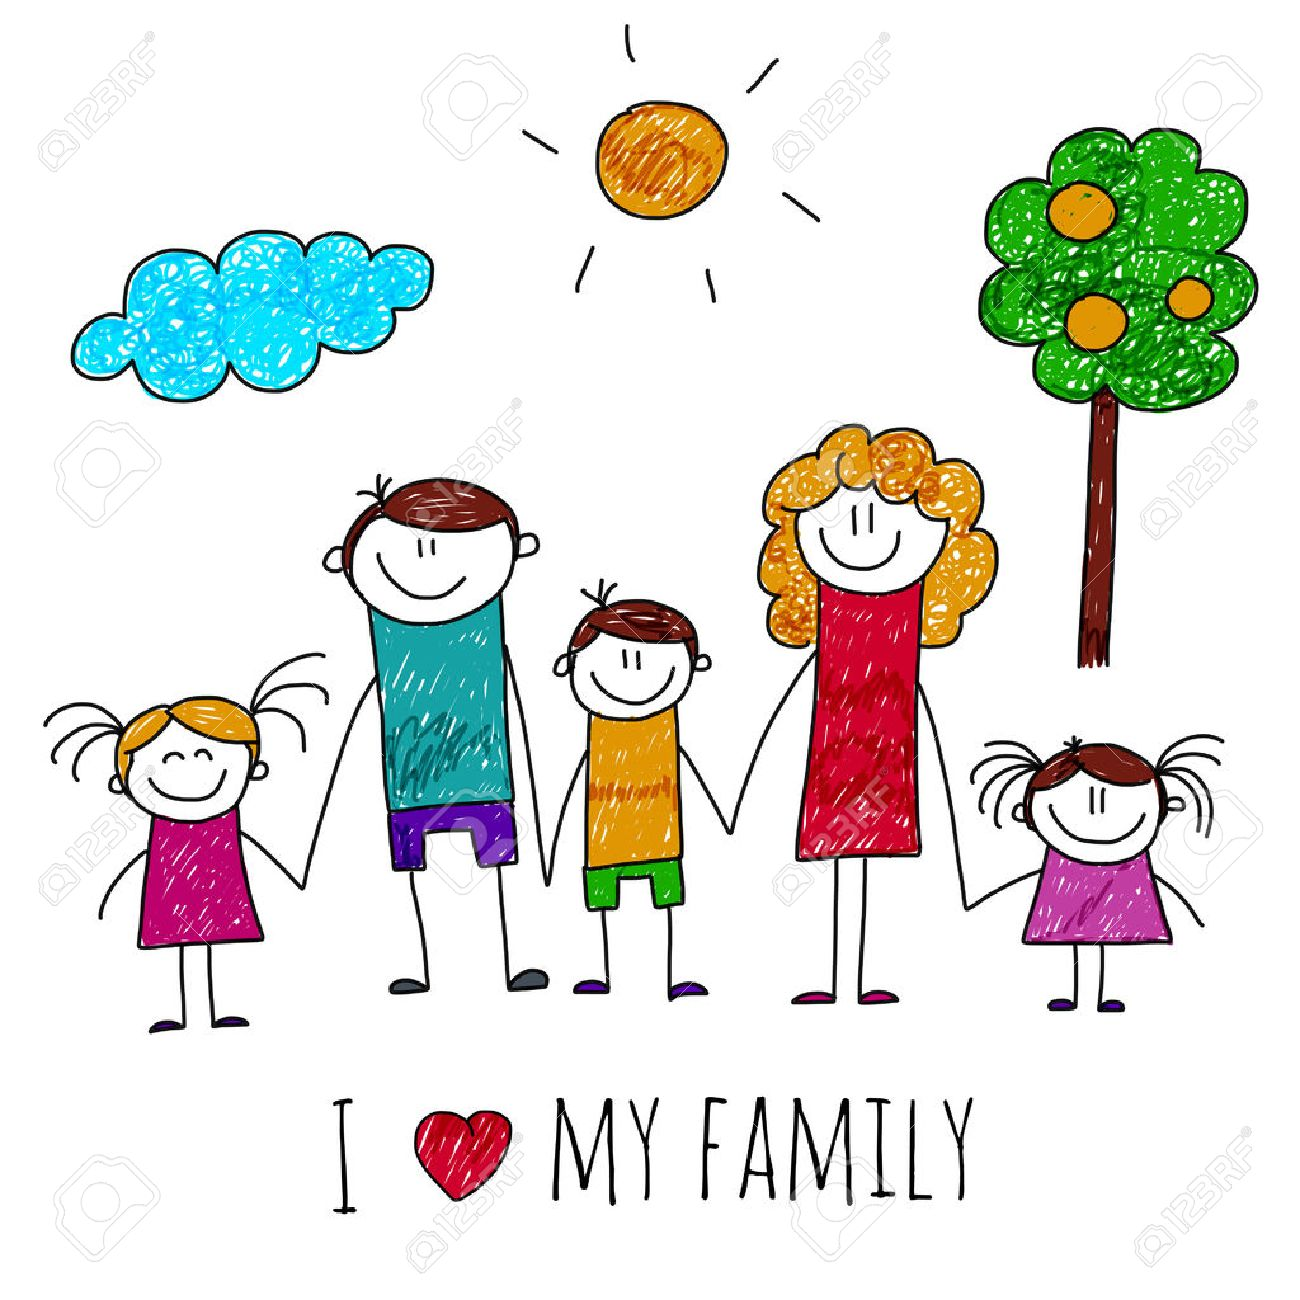 1300x1300 Image Of Big Happy Family. Kids Drawing Royalty Free Cliparts